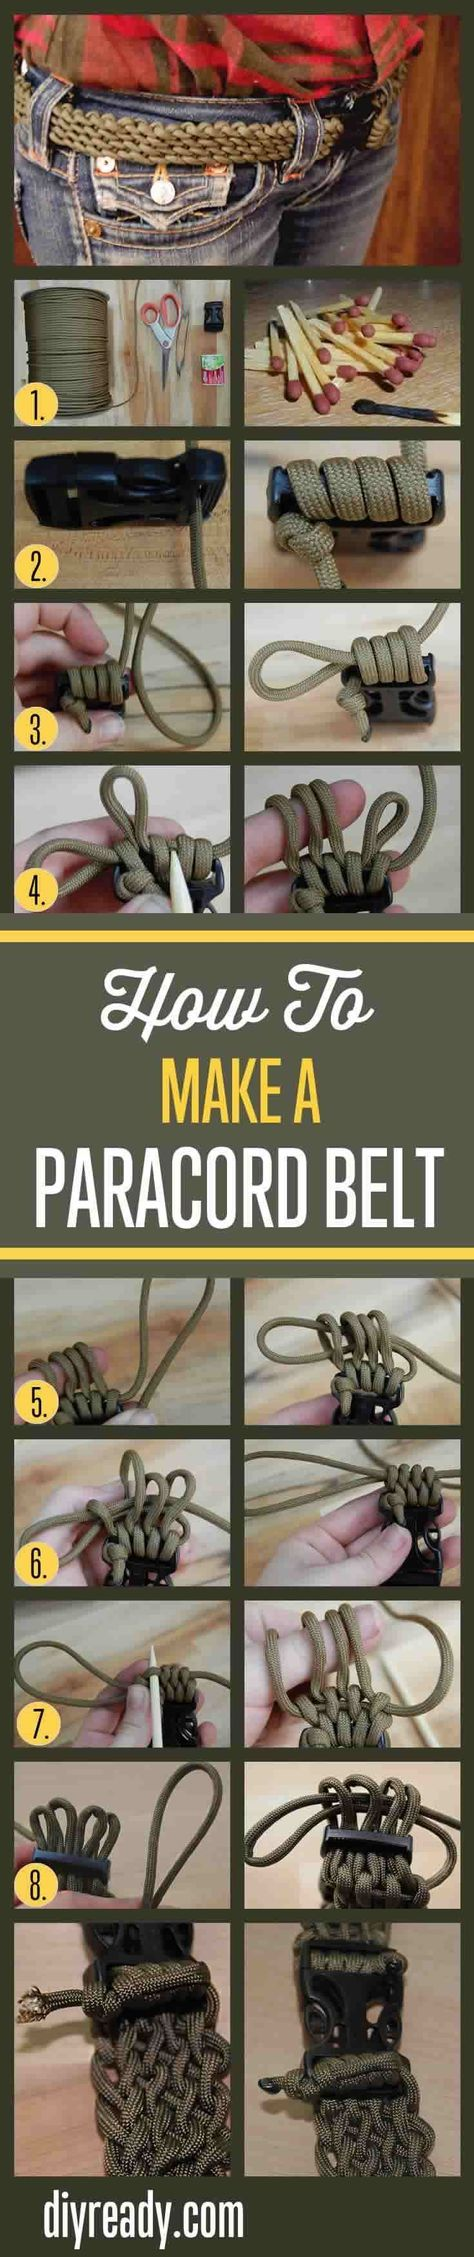 How To Make A Paracord Belt: Step-By-Step Instructions | DIY Projects